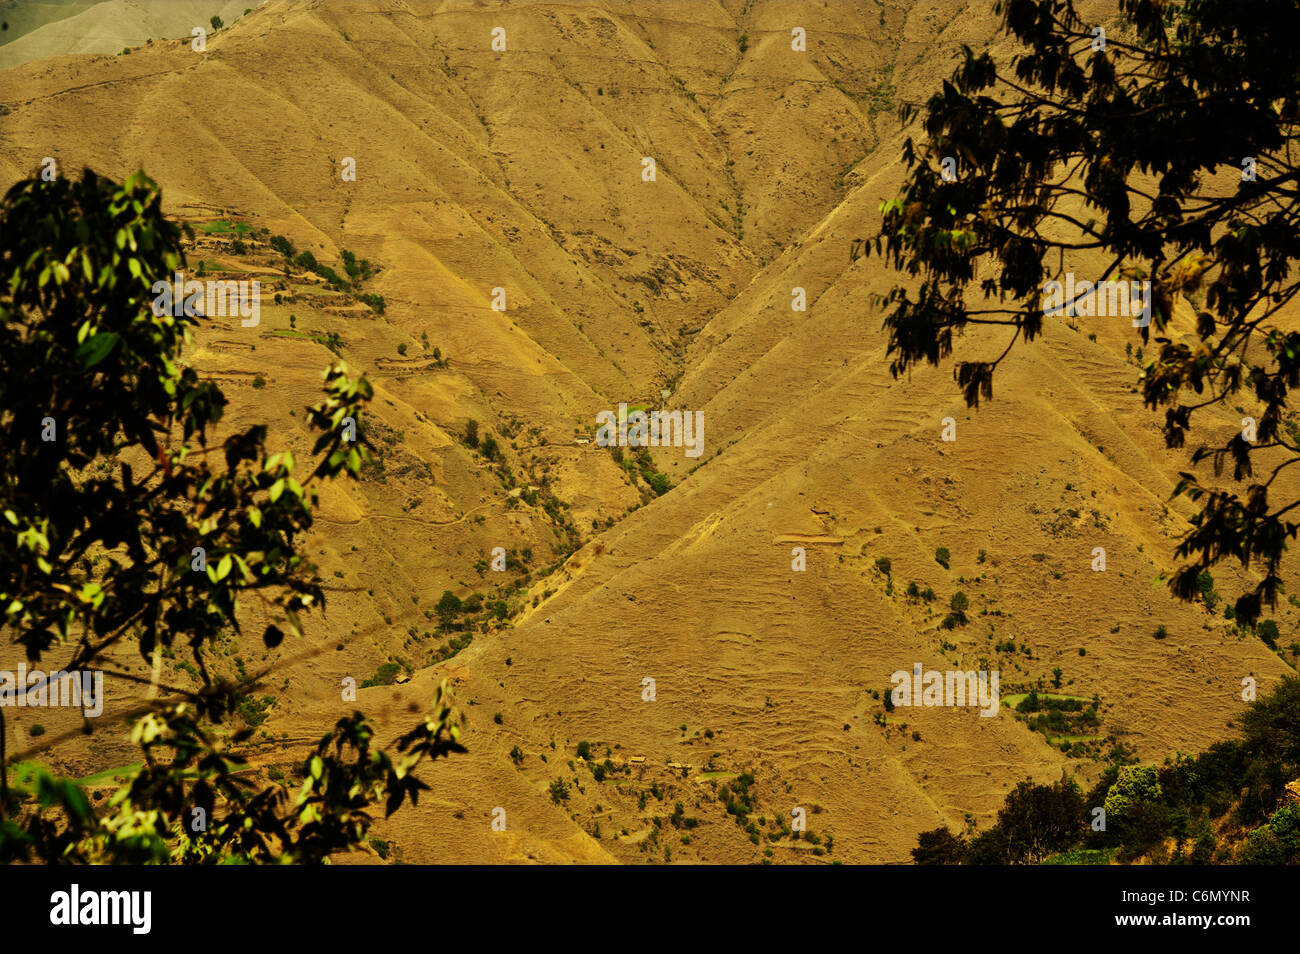 Ecological disaster on the Himalayas-Denudation of forest. - Stock Image